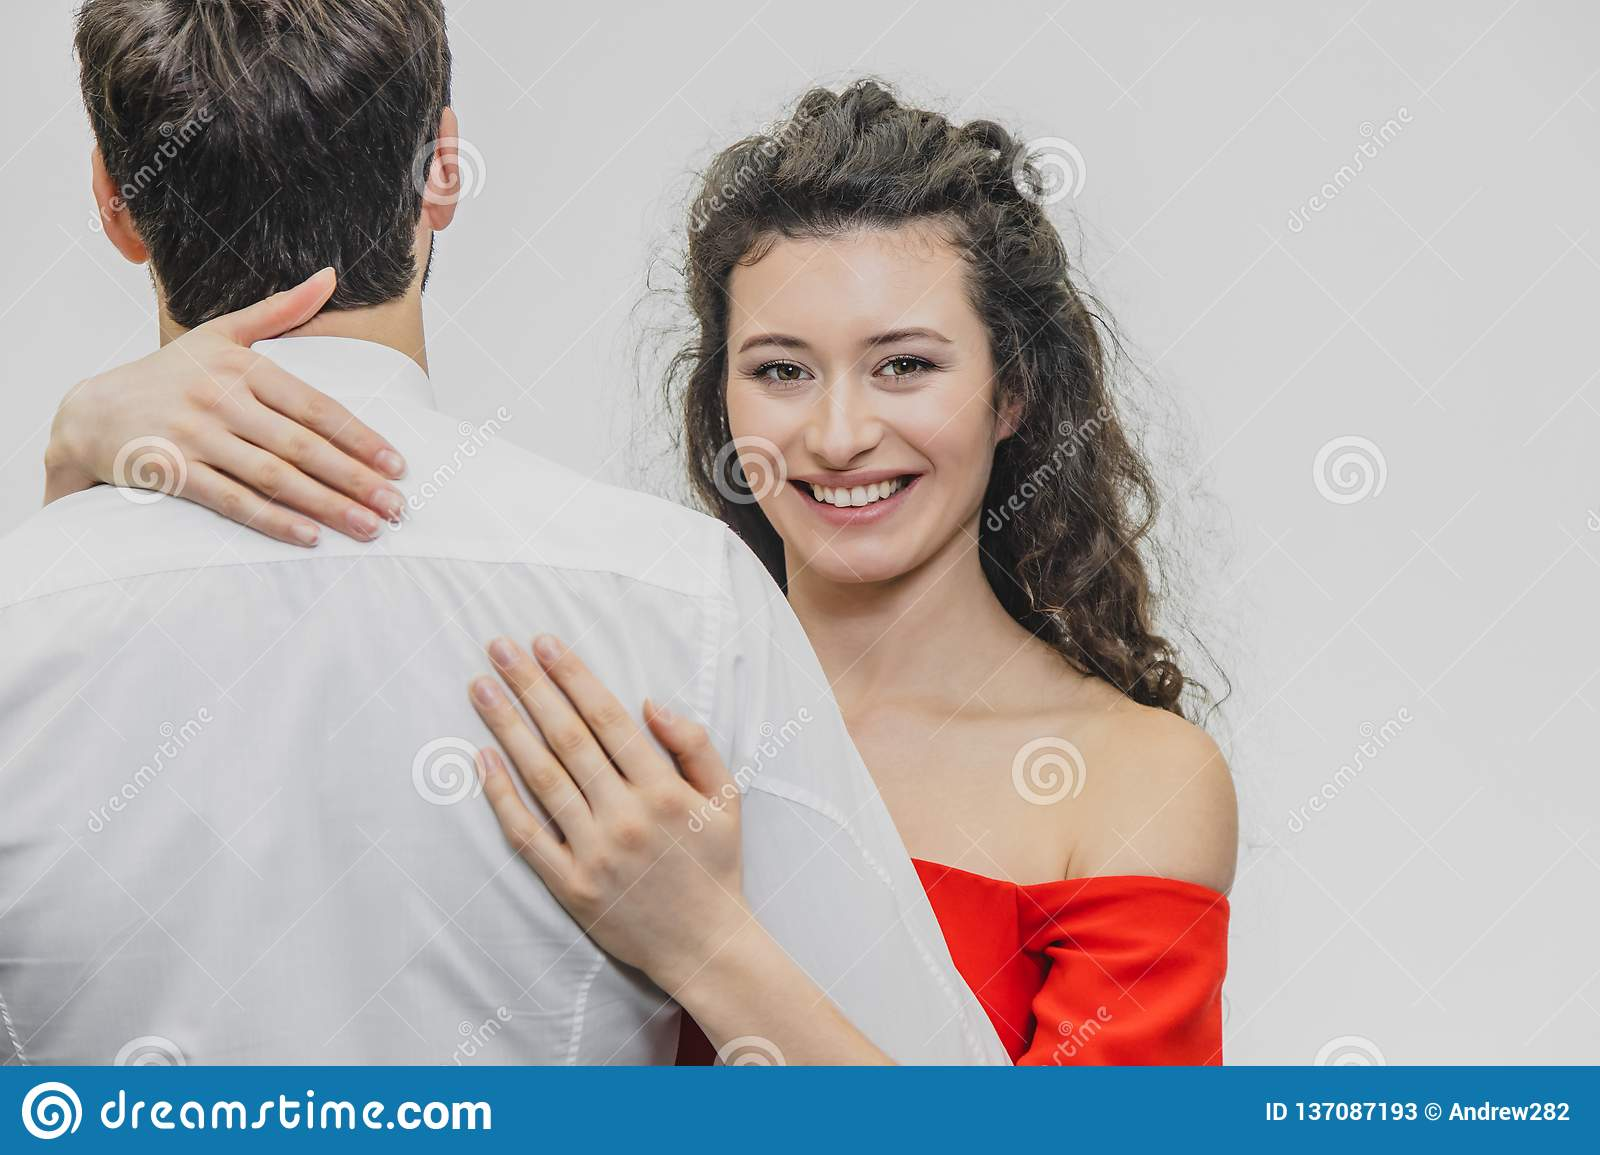 Man and woman with long hair. The wife hugged her husband. Back view. Valentine`s Day. I Woman dressed in red man dress